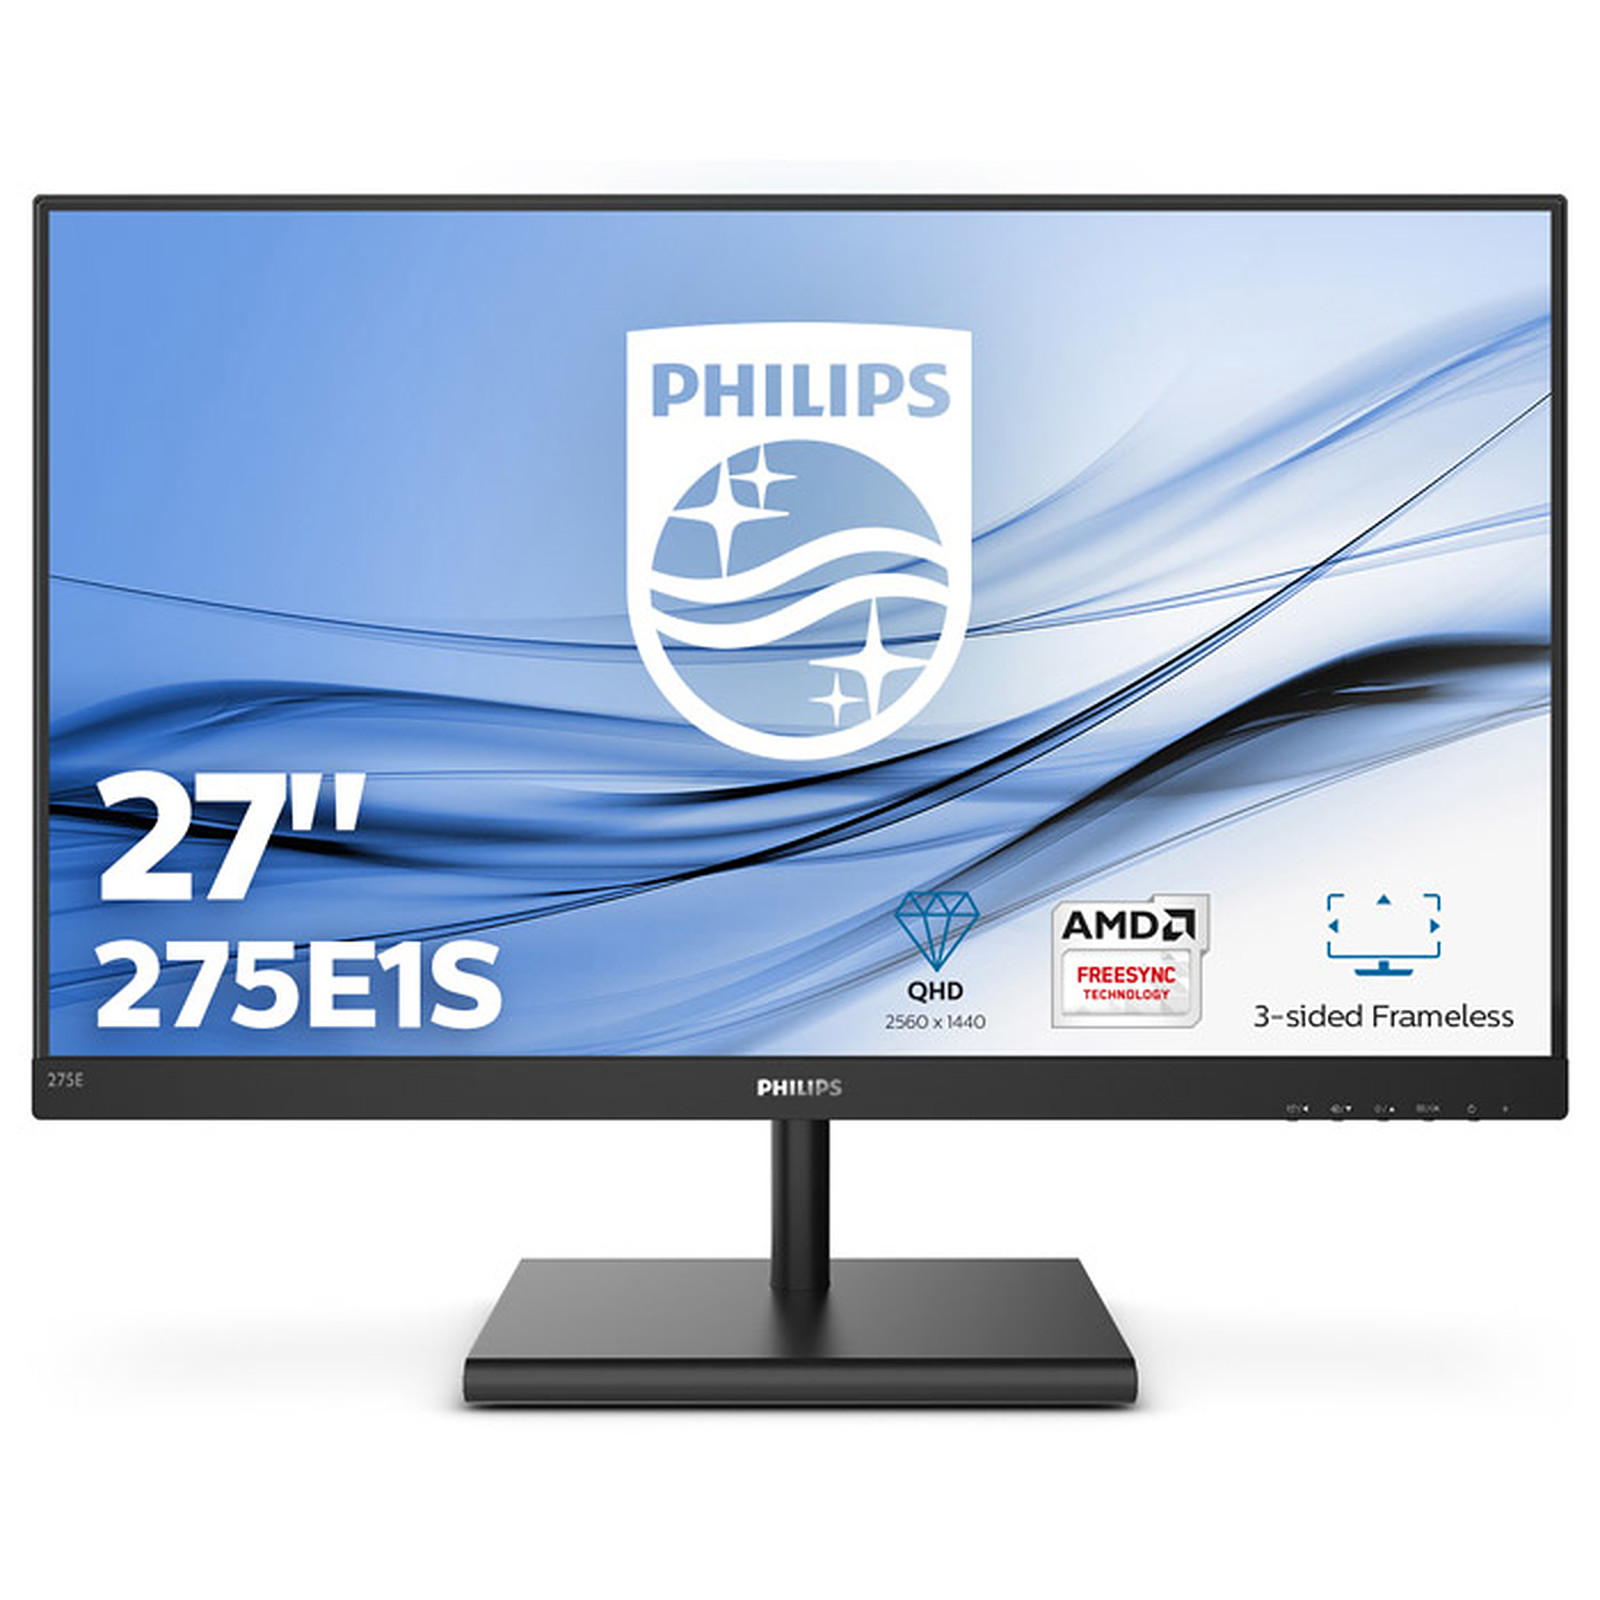 "Philips 27"" LED - 275E1S"